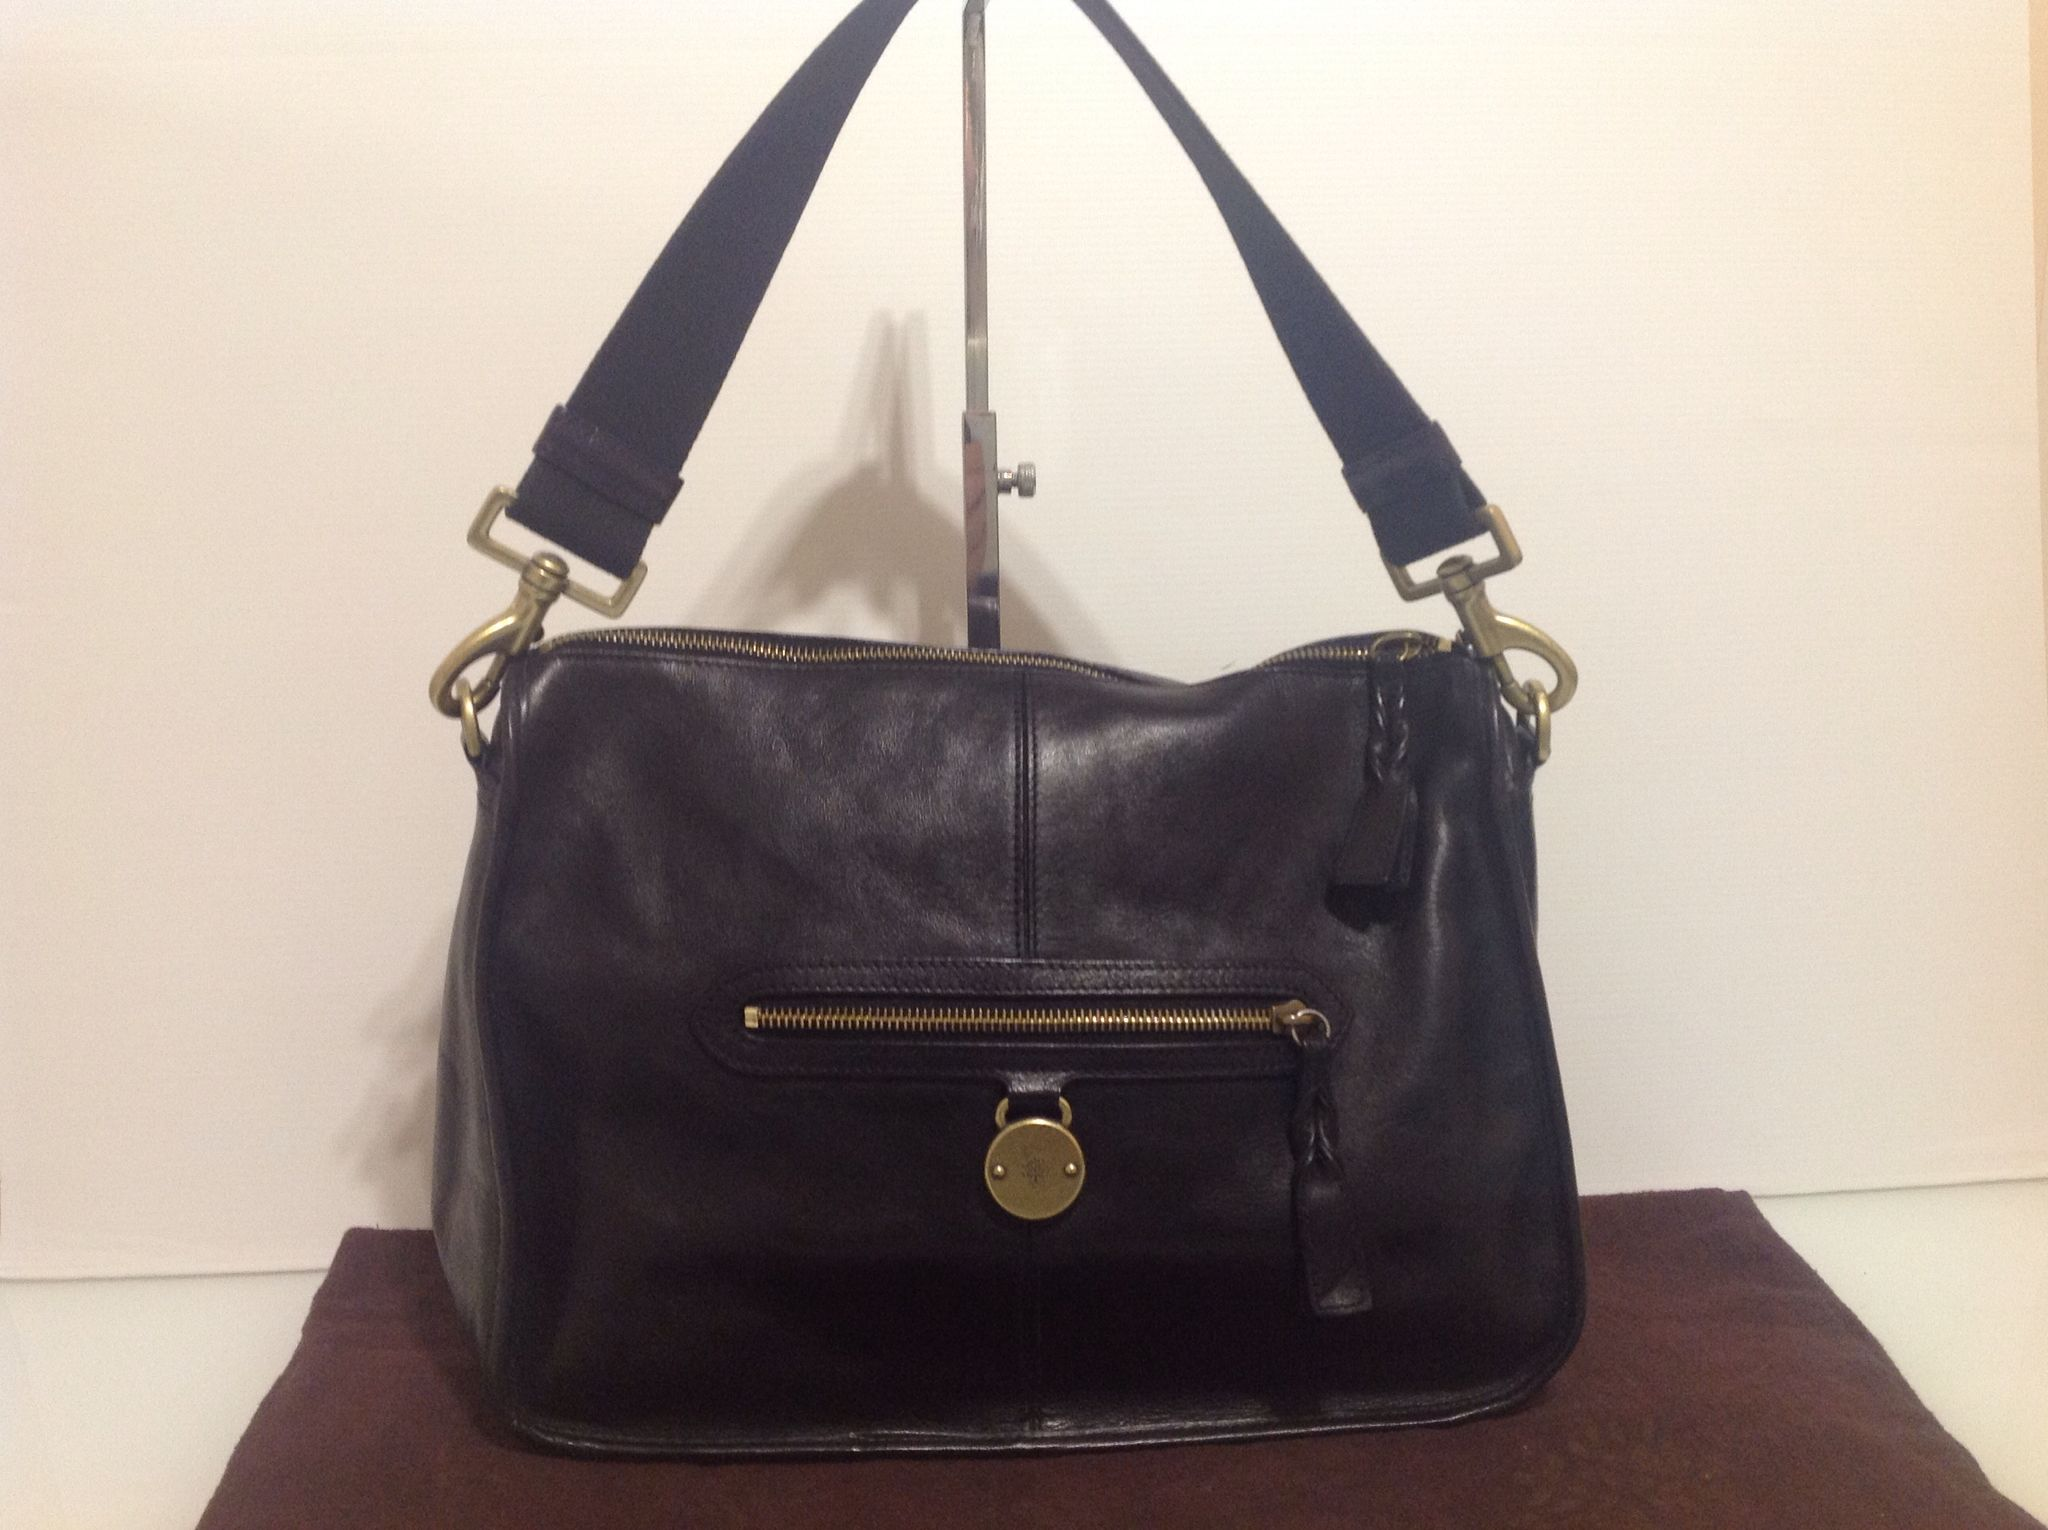 c7fe01d0e9 Authentic Mulberry Somerset Shoulder Tote in Black Leather with Dust Bag  340.00 This is a guaranteed